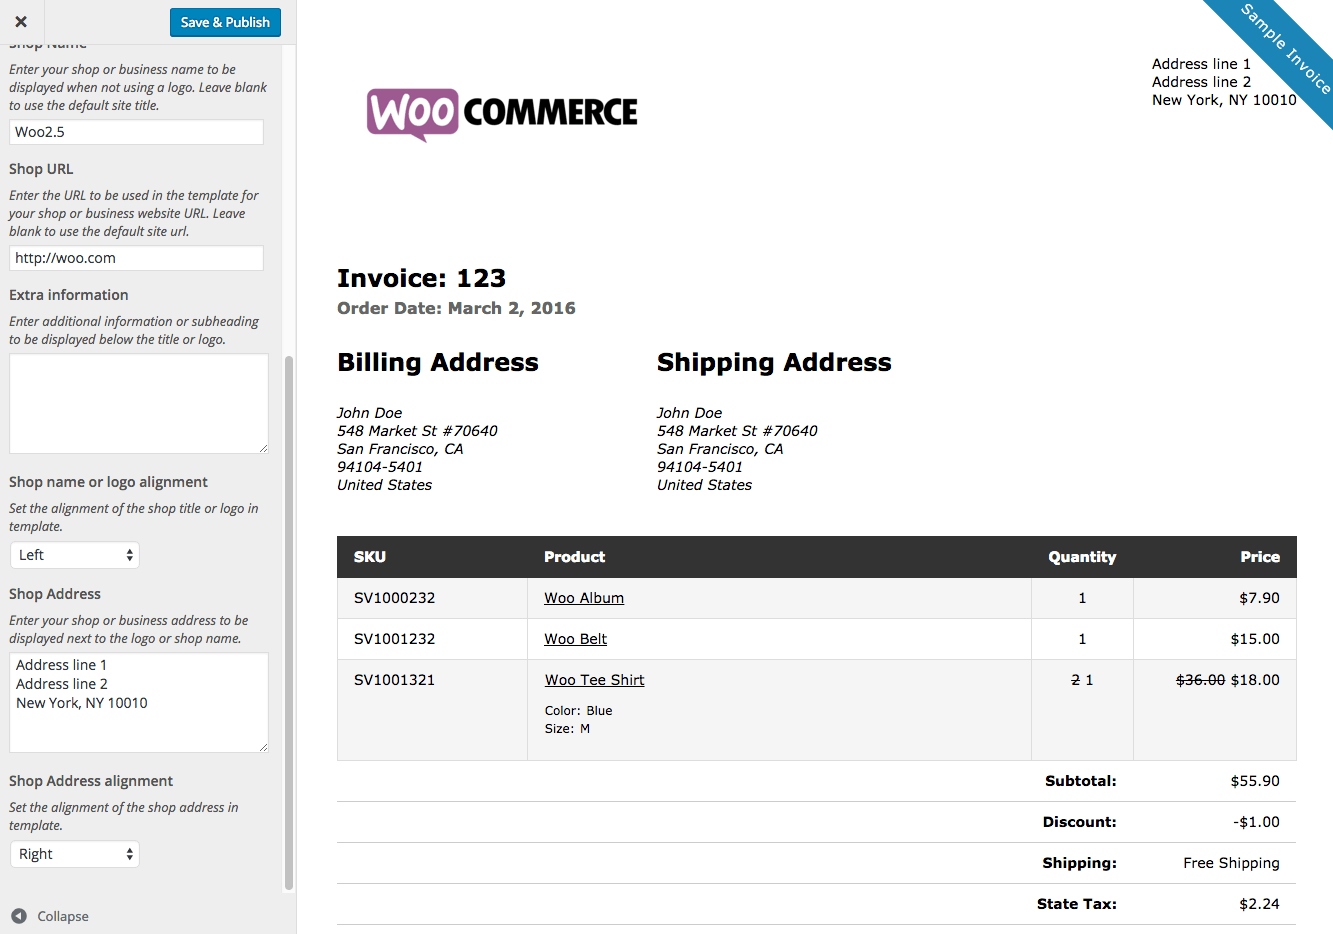 Hius  Fascinating Print Invoices Amp Packing Lists  Woocommerce With Extraordinary Woocommerce Print Invoices  Packing Lists Customizer With Captivating Vehicle Invoice By Vin Also Numbering Invoices In Addition Free Invoices Forms And Proforma Invoice Format As Well As Legal Invoice Template Word Additionally Invoice Templae From Woocommercecom With Hius  Extraordinary Print Invoices Amp Packing Lists  Woocommerce With Captivating Woocommerce Print Invoices  Packing Lists Customizer And Fascinating Vehicle Invoice By Vin Also Numbering Invoices In Addition Free Invoices Forms From Woocommercecom